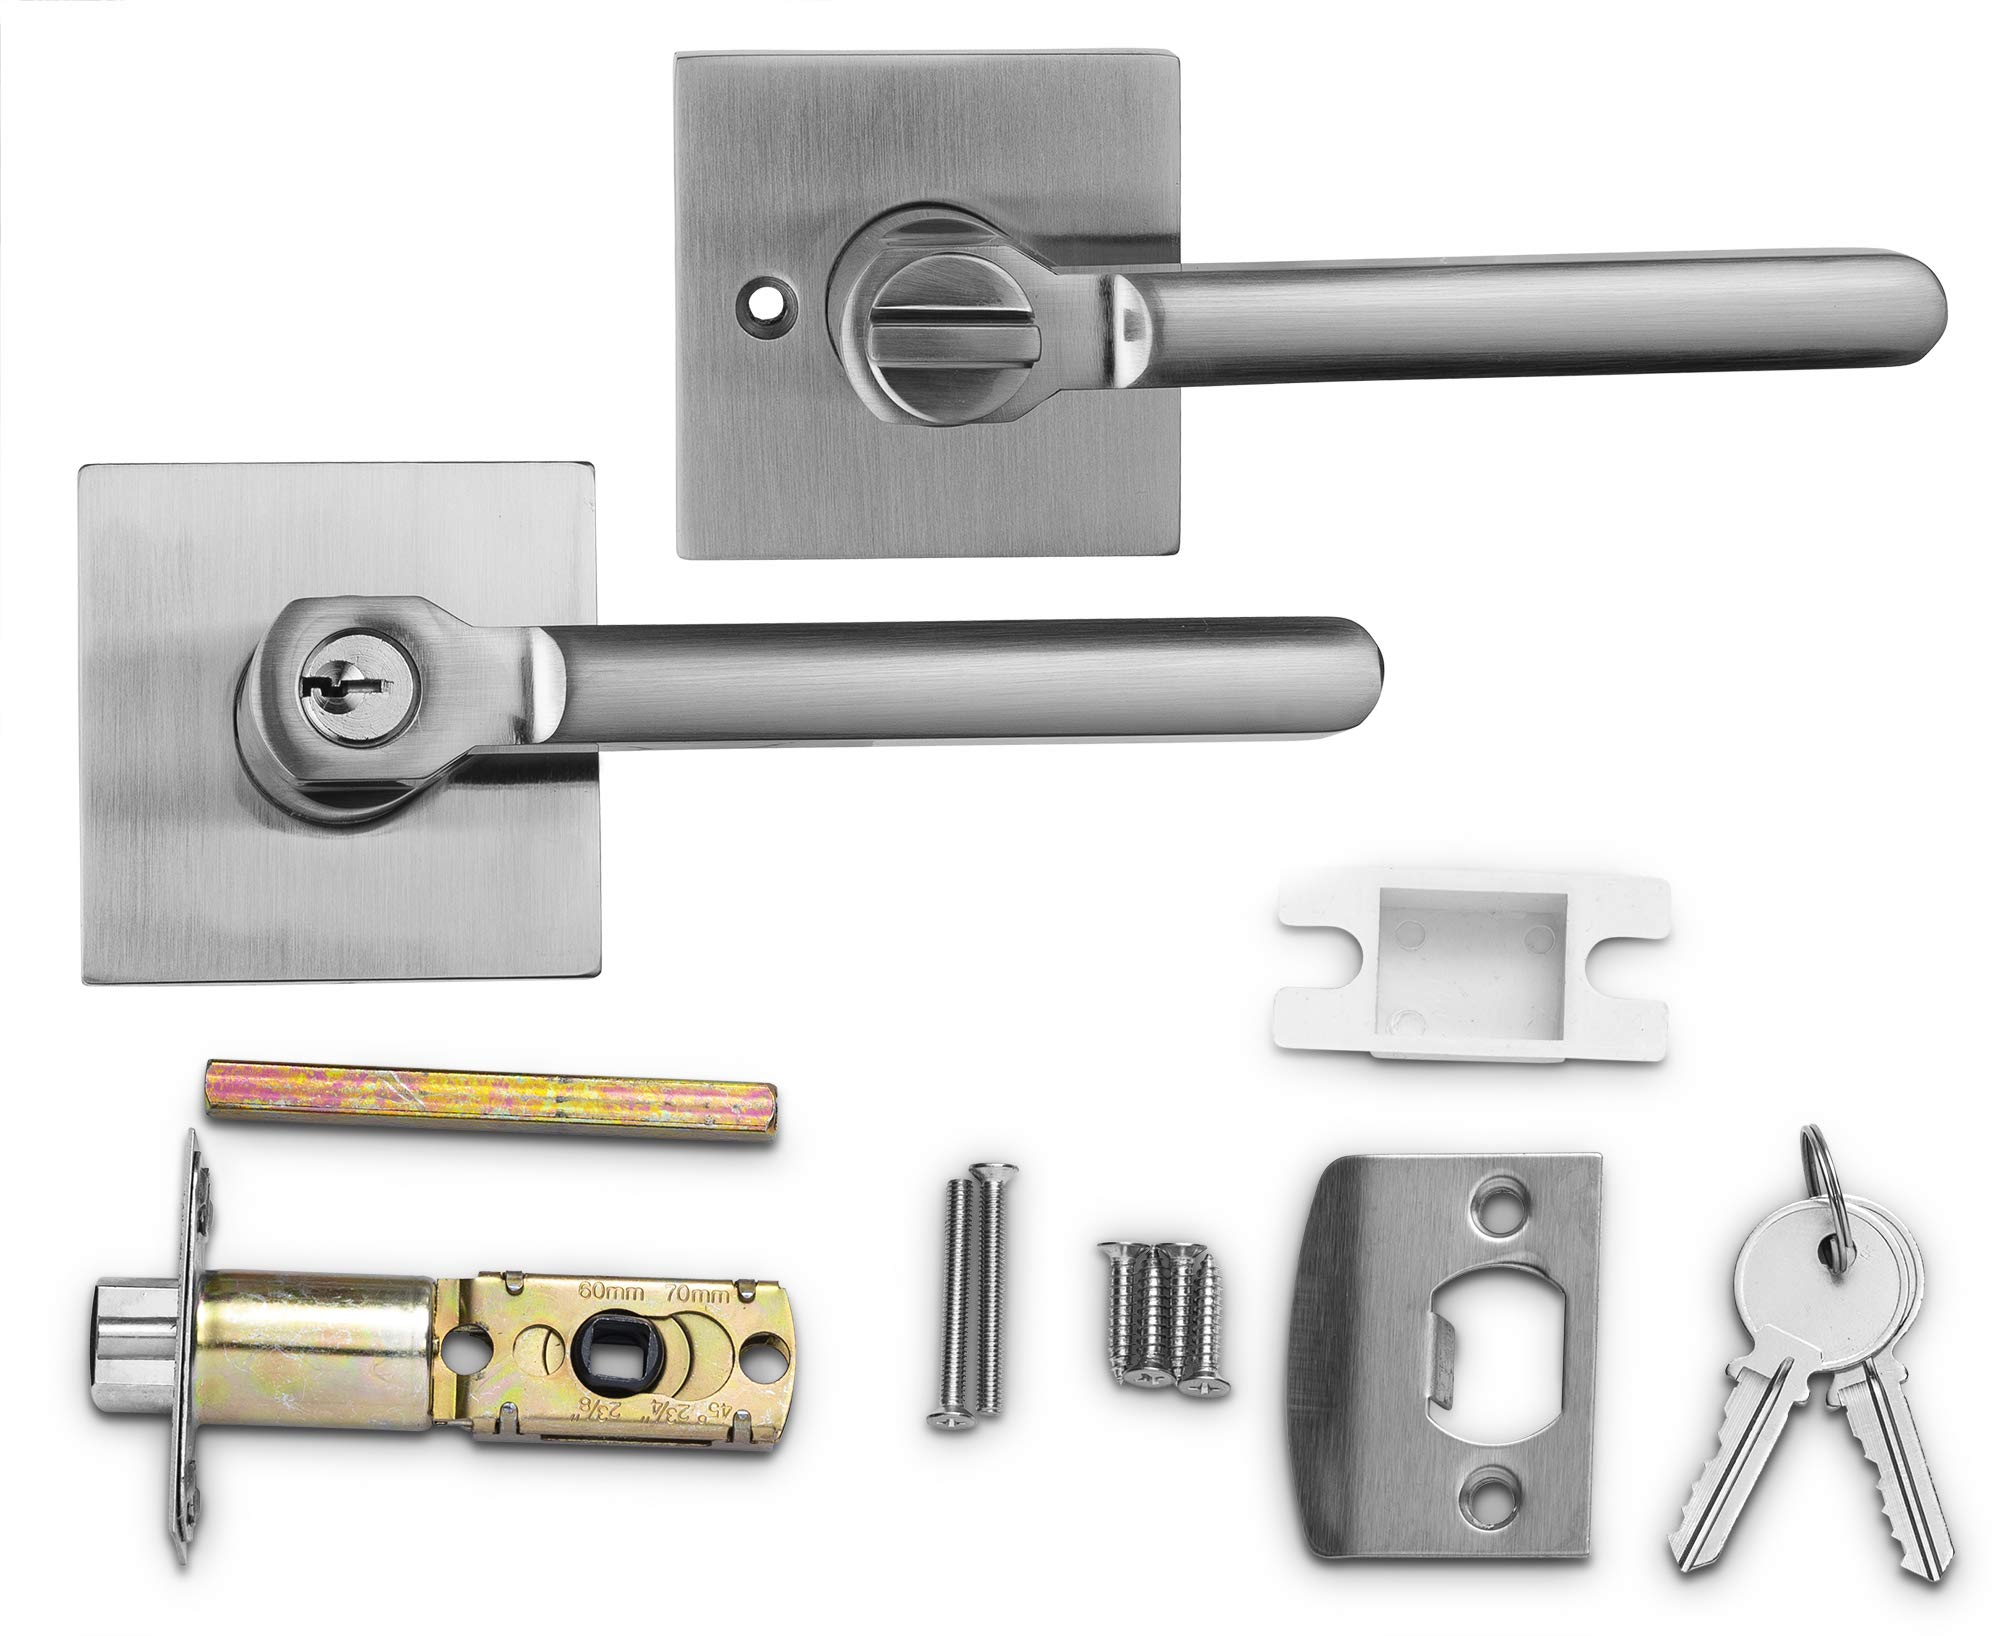 Berlin Modisch Entry Lever Door Handle Lock and Key Slim Square Locking Lever Set [for Front Door or Office] Reversible for Right & Left Sided Doors Heavy Duty – Satin Nickel Finish by Berlin Modisch (Image #2)